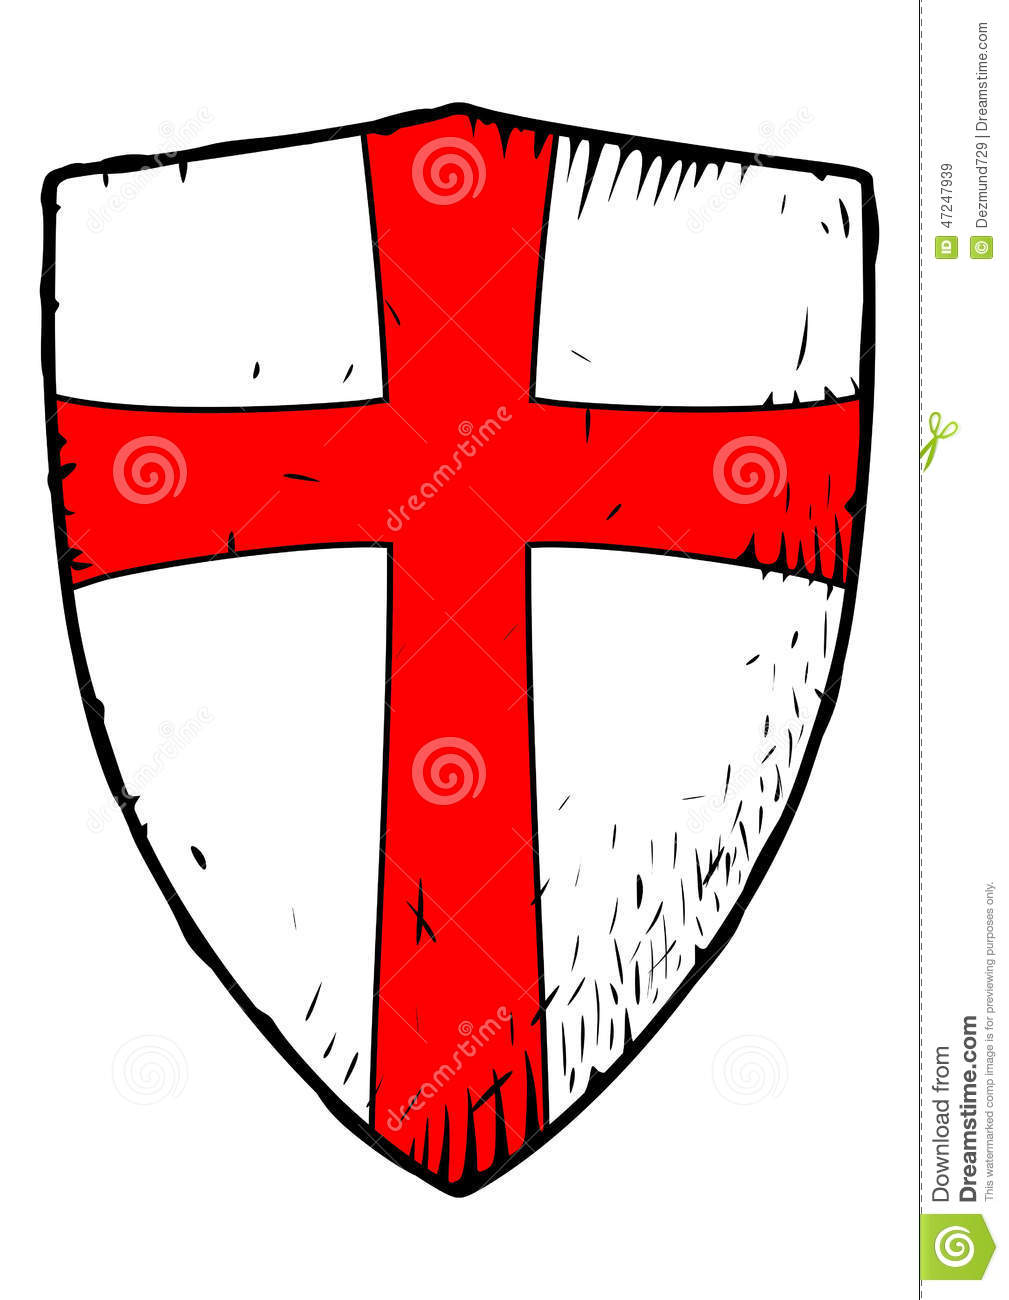 Templar shield with a red cross stock vector illustration of templar shield with a red cross biocorpaavc Choice Image